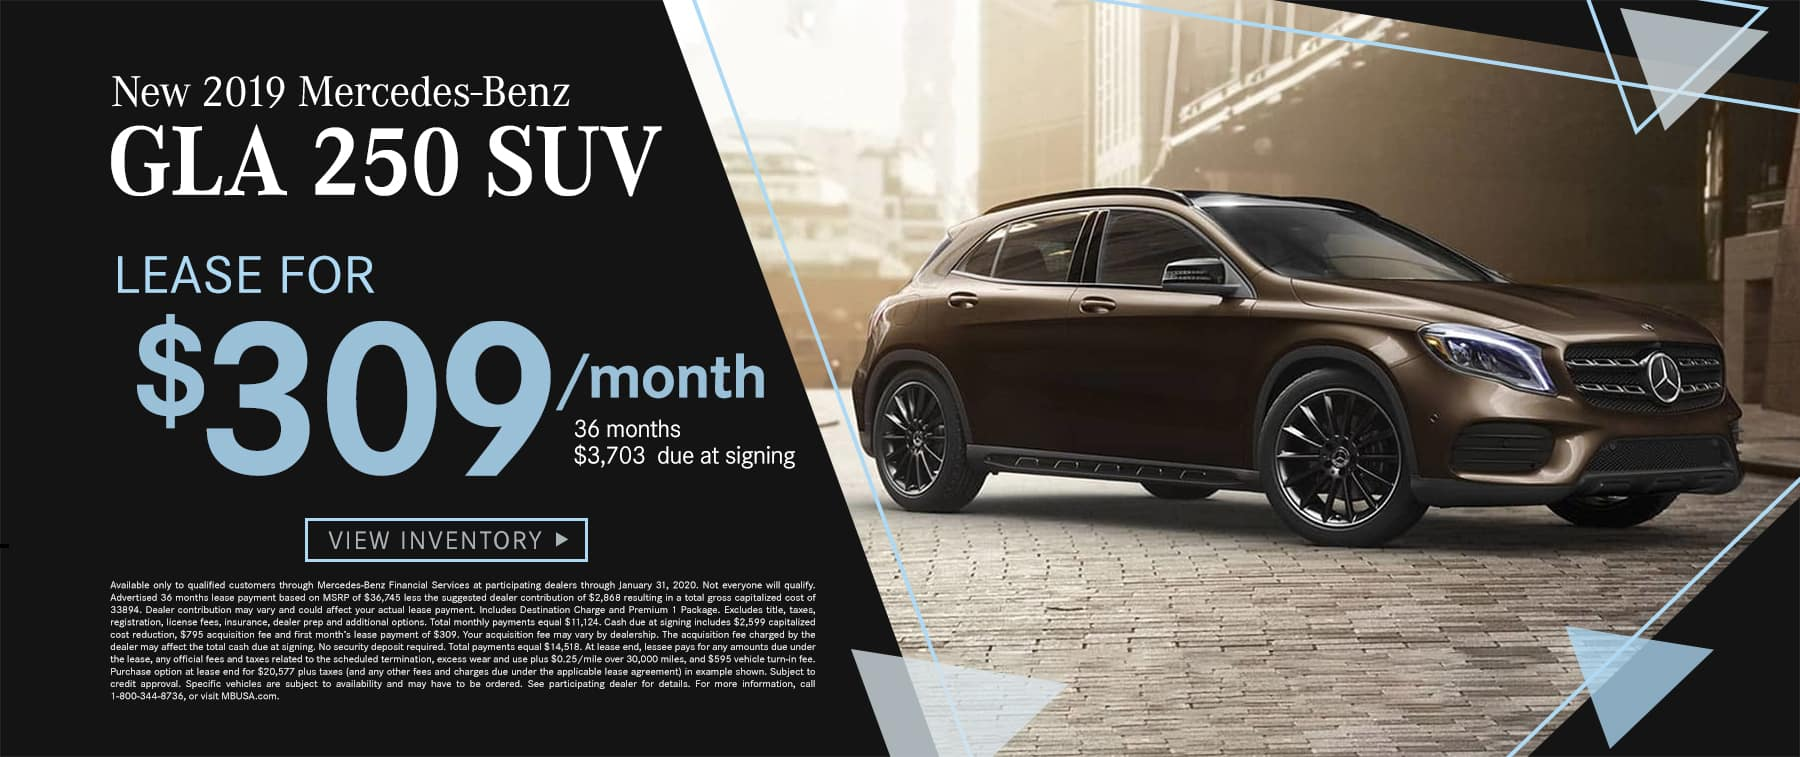 2019 GLA 250 SUV $309 Per Month 36 Months/10k Miles $3703 Due at signing